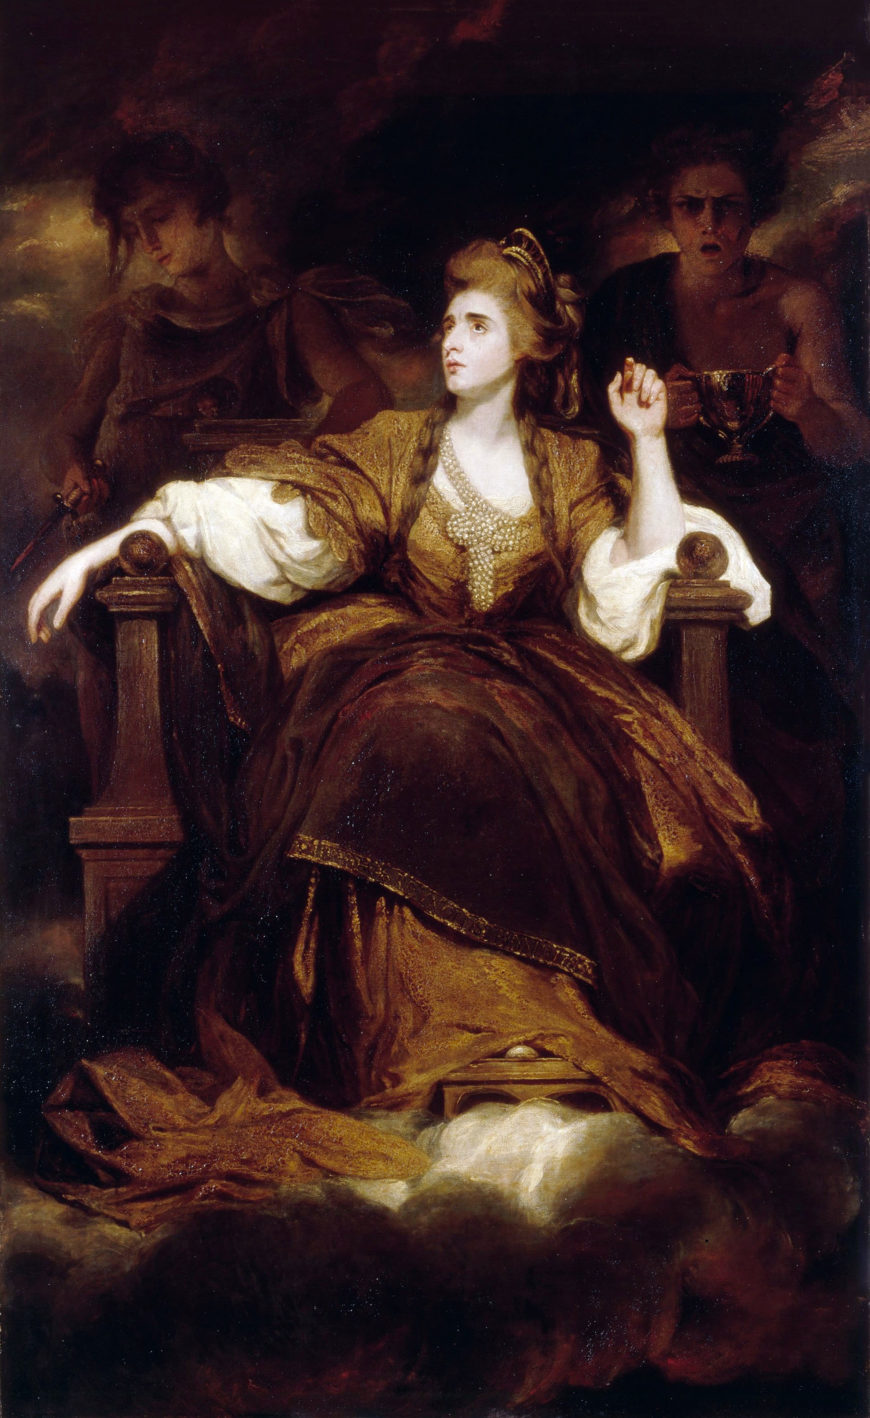 Sir Joshua Reynolds, Mrs Siddons as the Tragic Muse, 1783–1784, oil on canvas, 239. 4 x 147.6 cm (The Huntington Library, Art Museum, and Botanical Gardens)